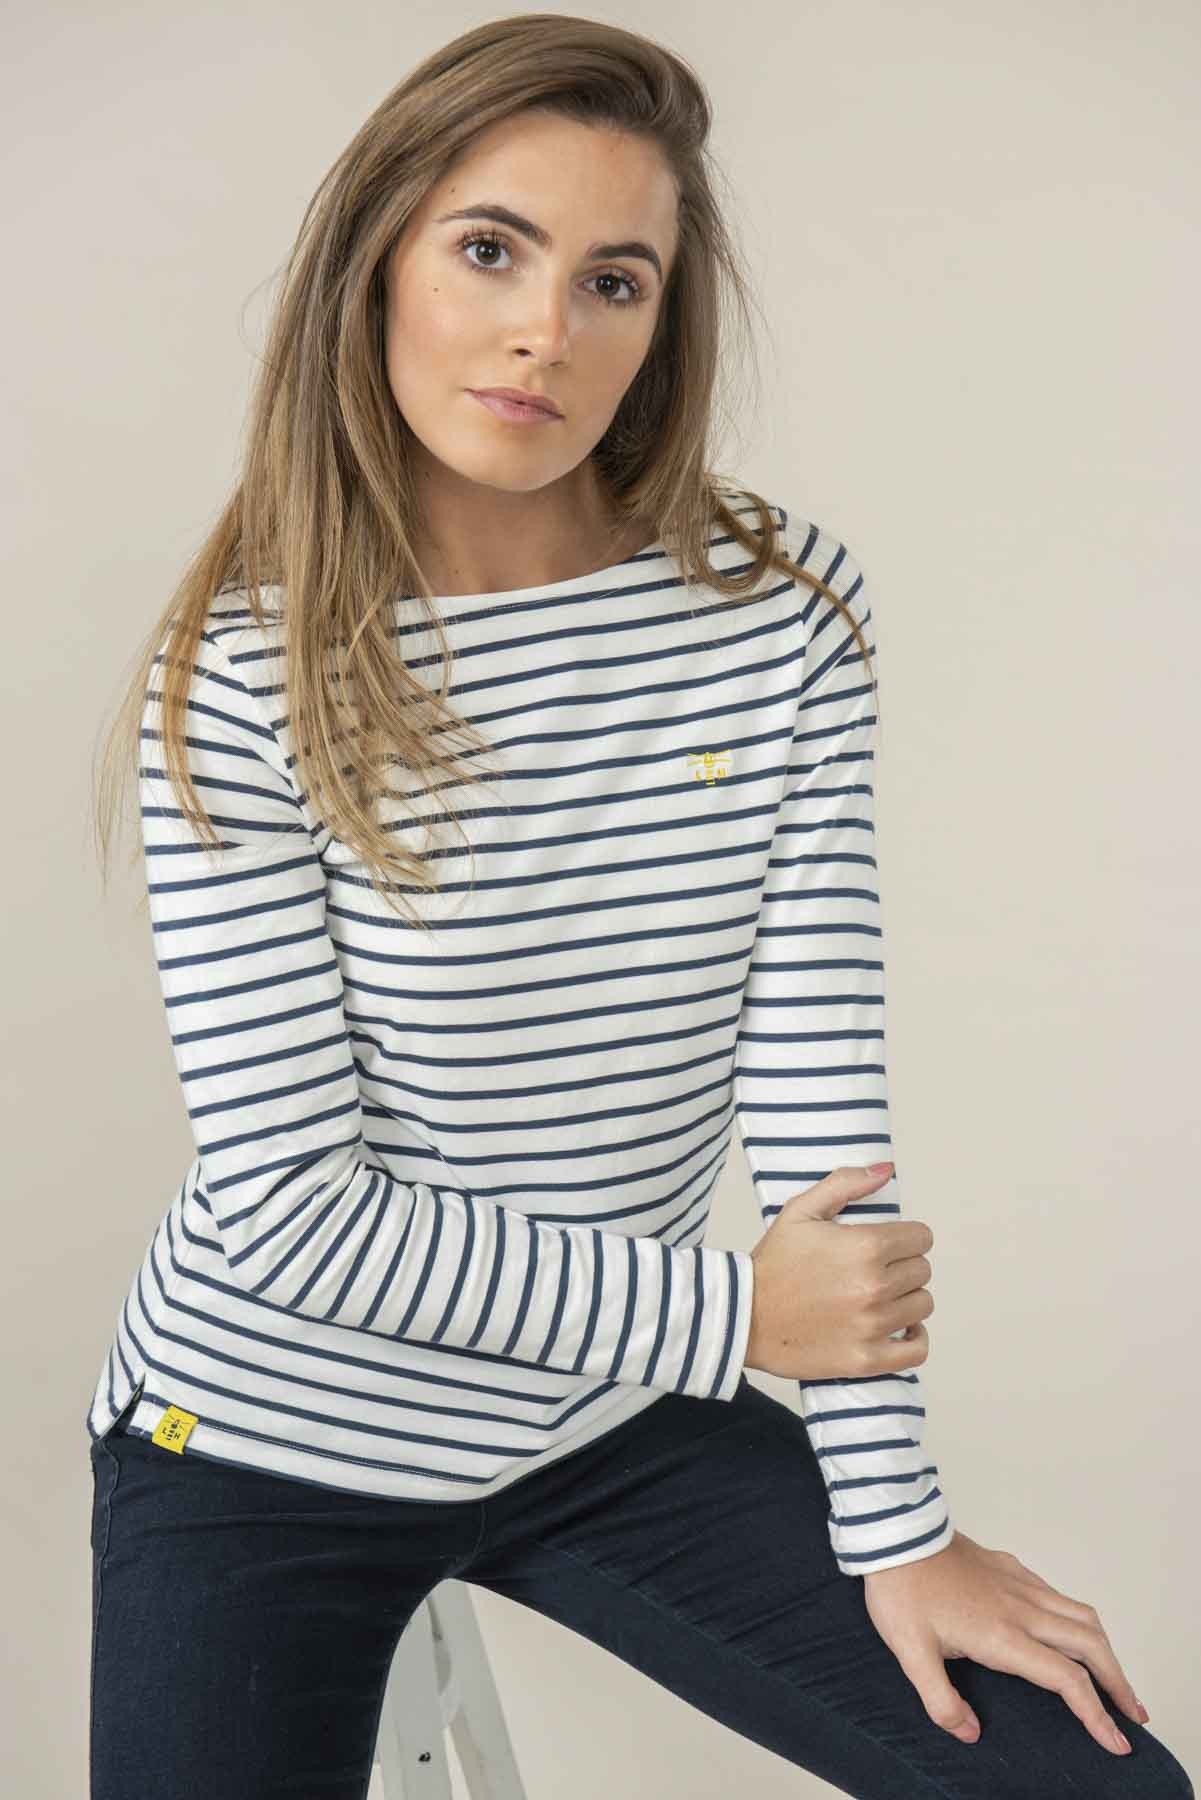 Causeway Women's Navy Breton Striped Long Sleeve Top